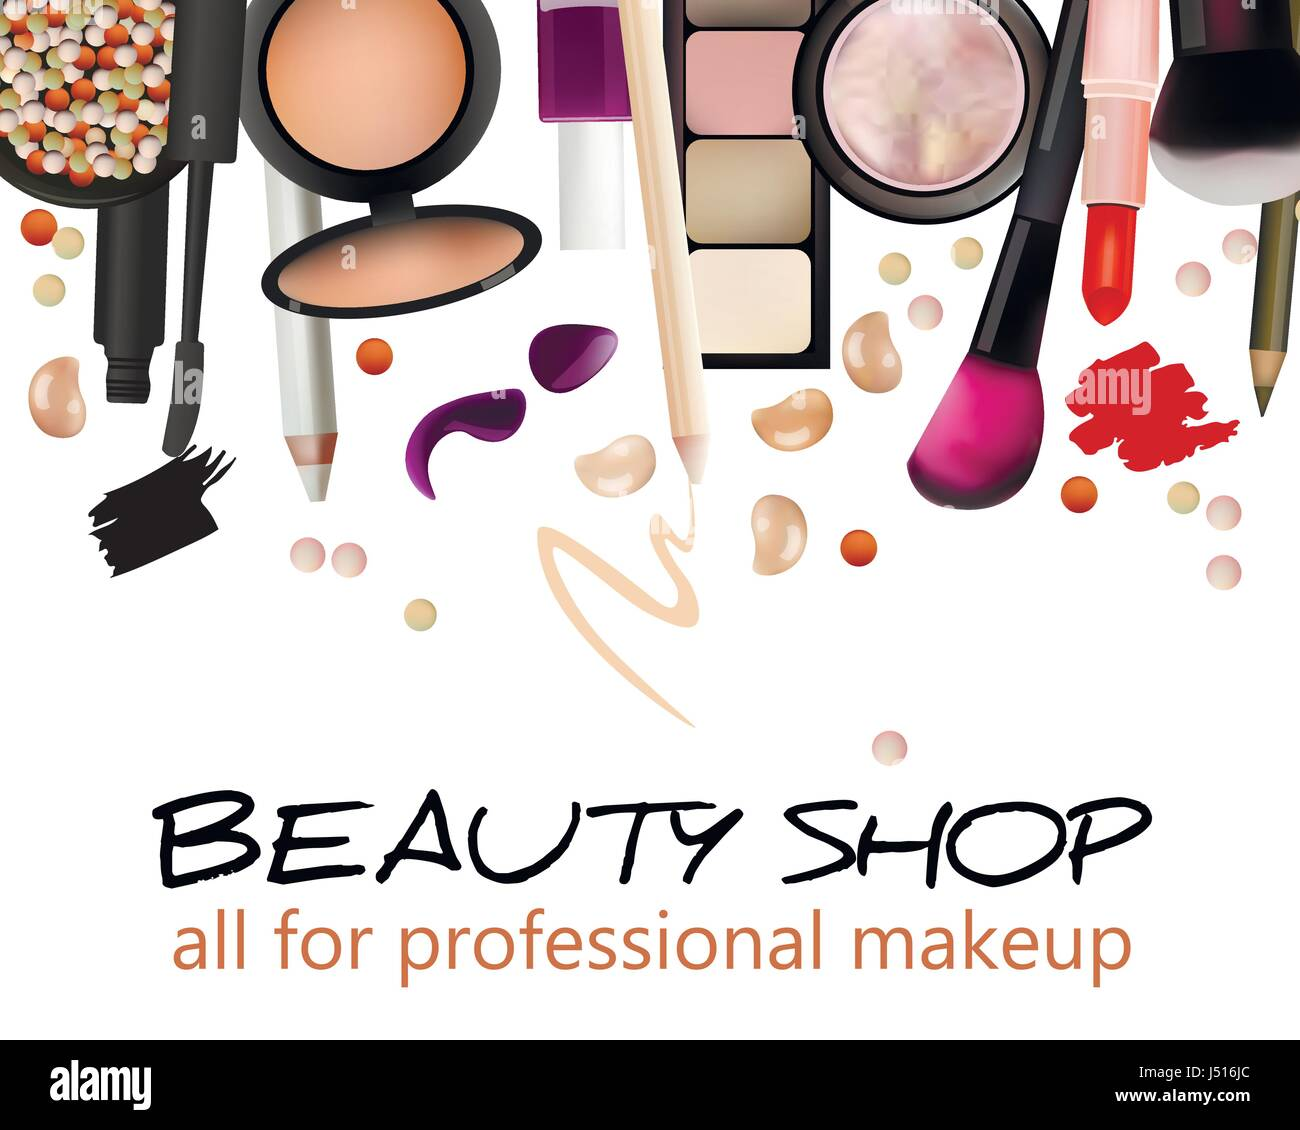 Beauty Shop Business Card Design Banner Cosmetics Stock Vector Image Art Alamy